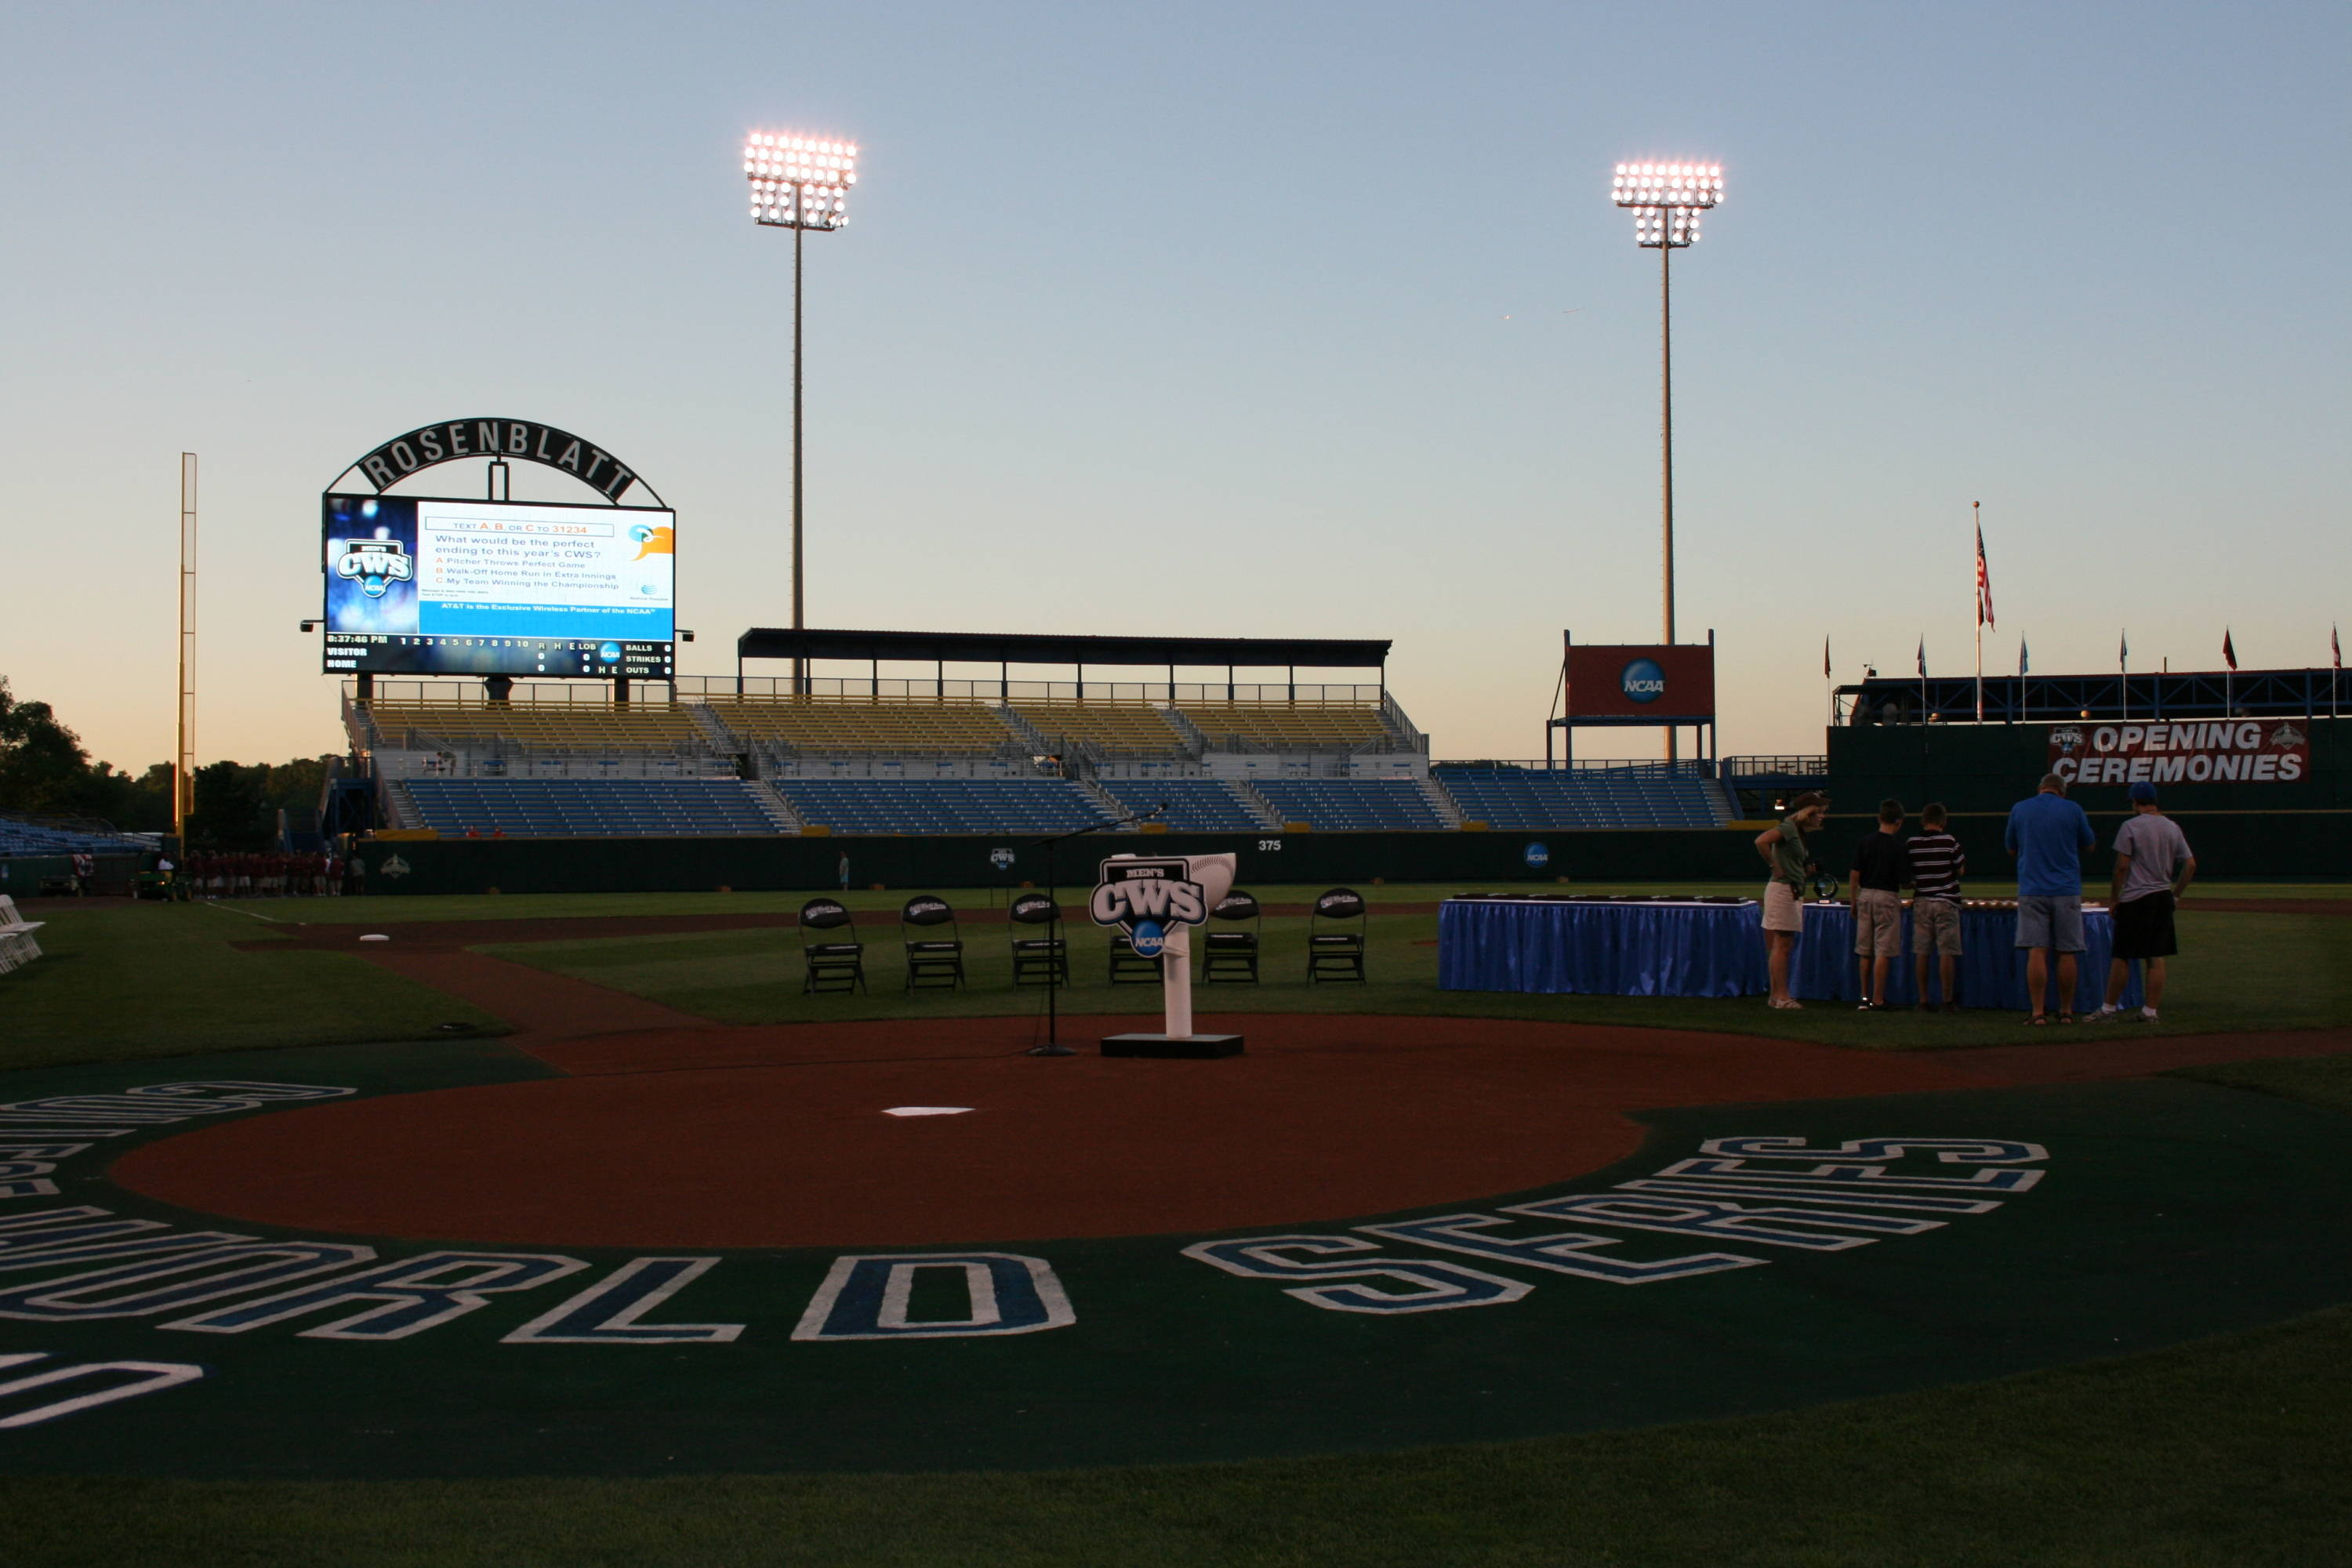 Opening ceremonies on Friday night